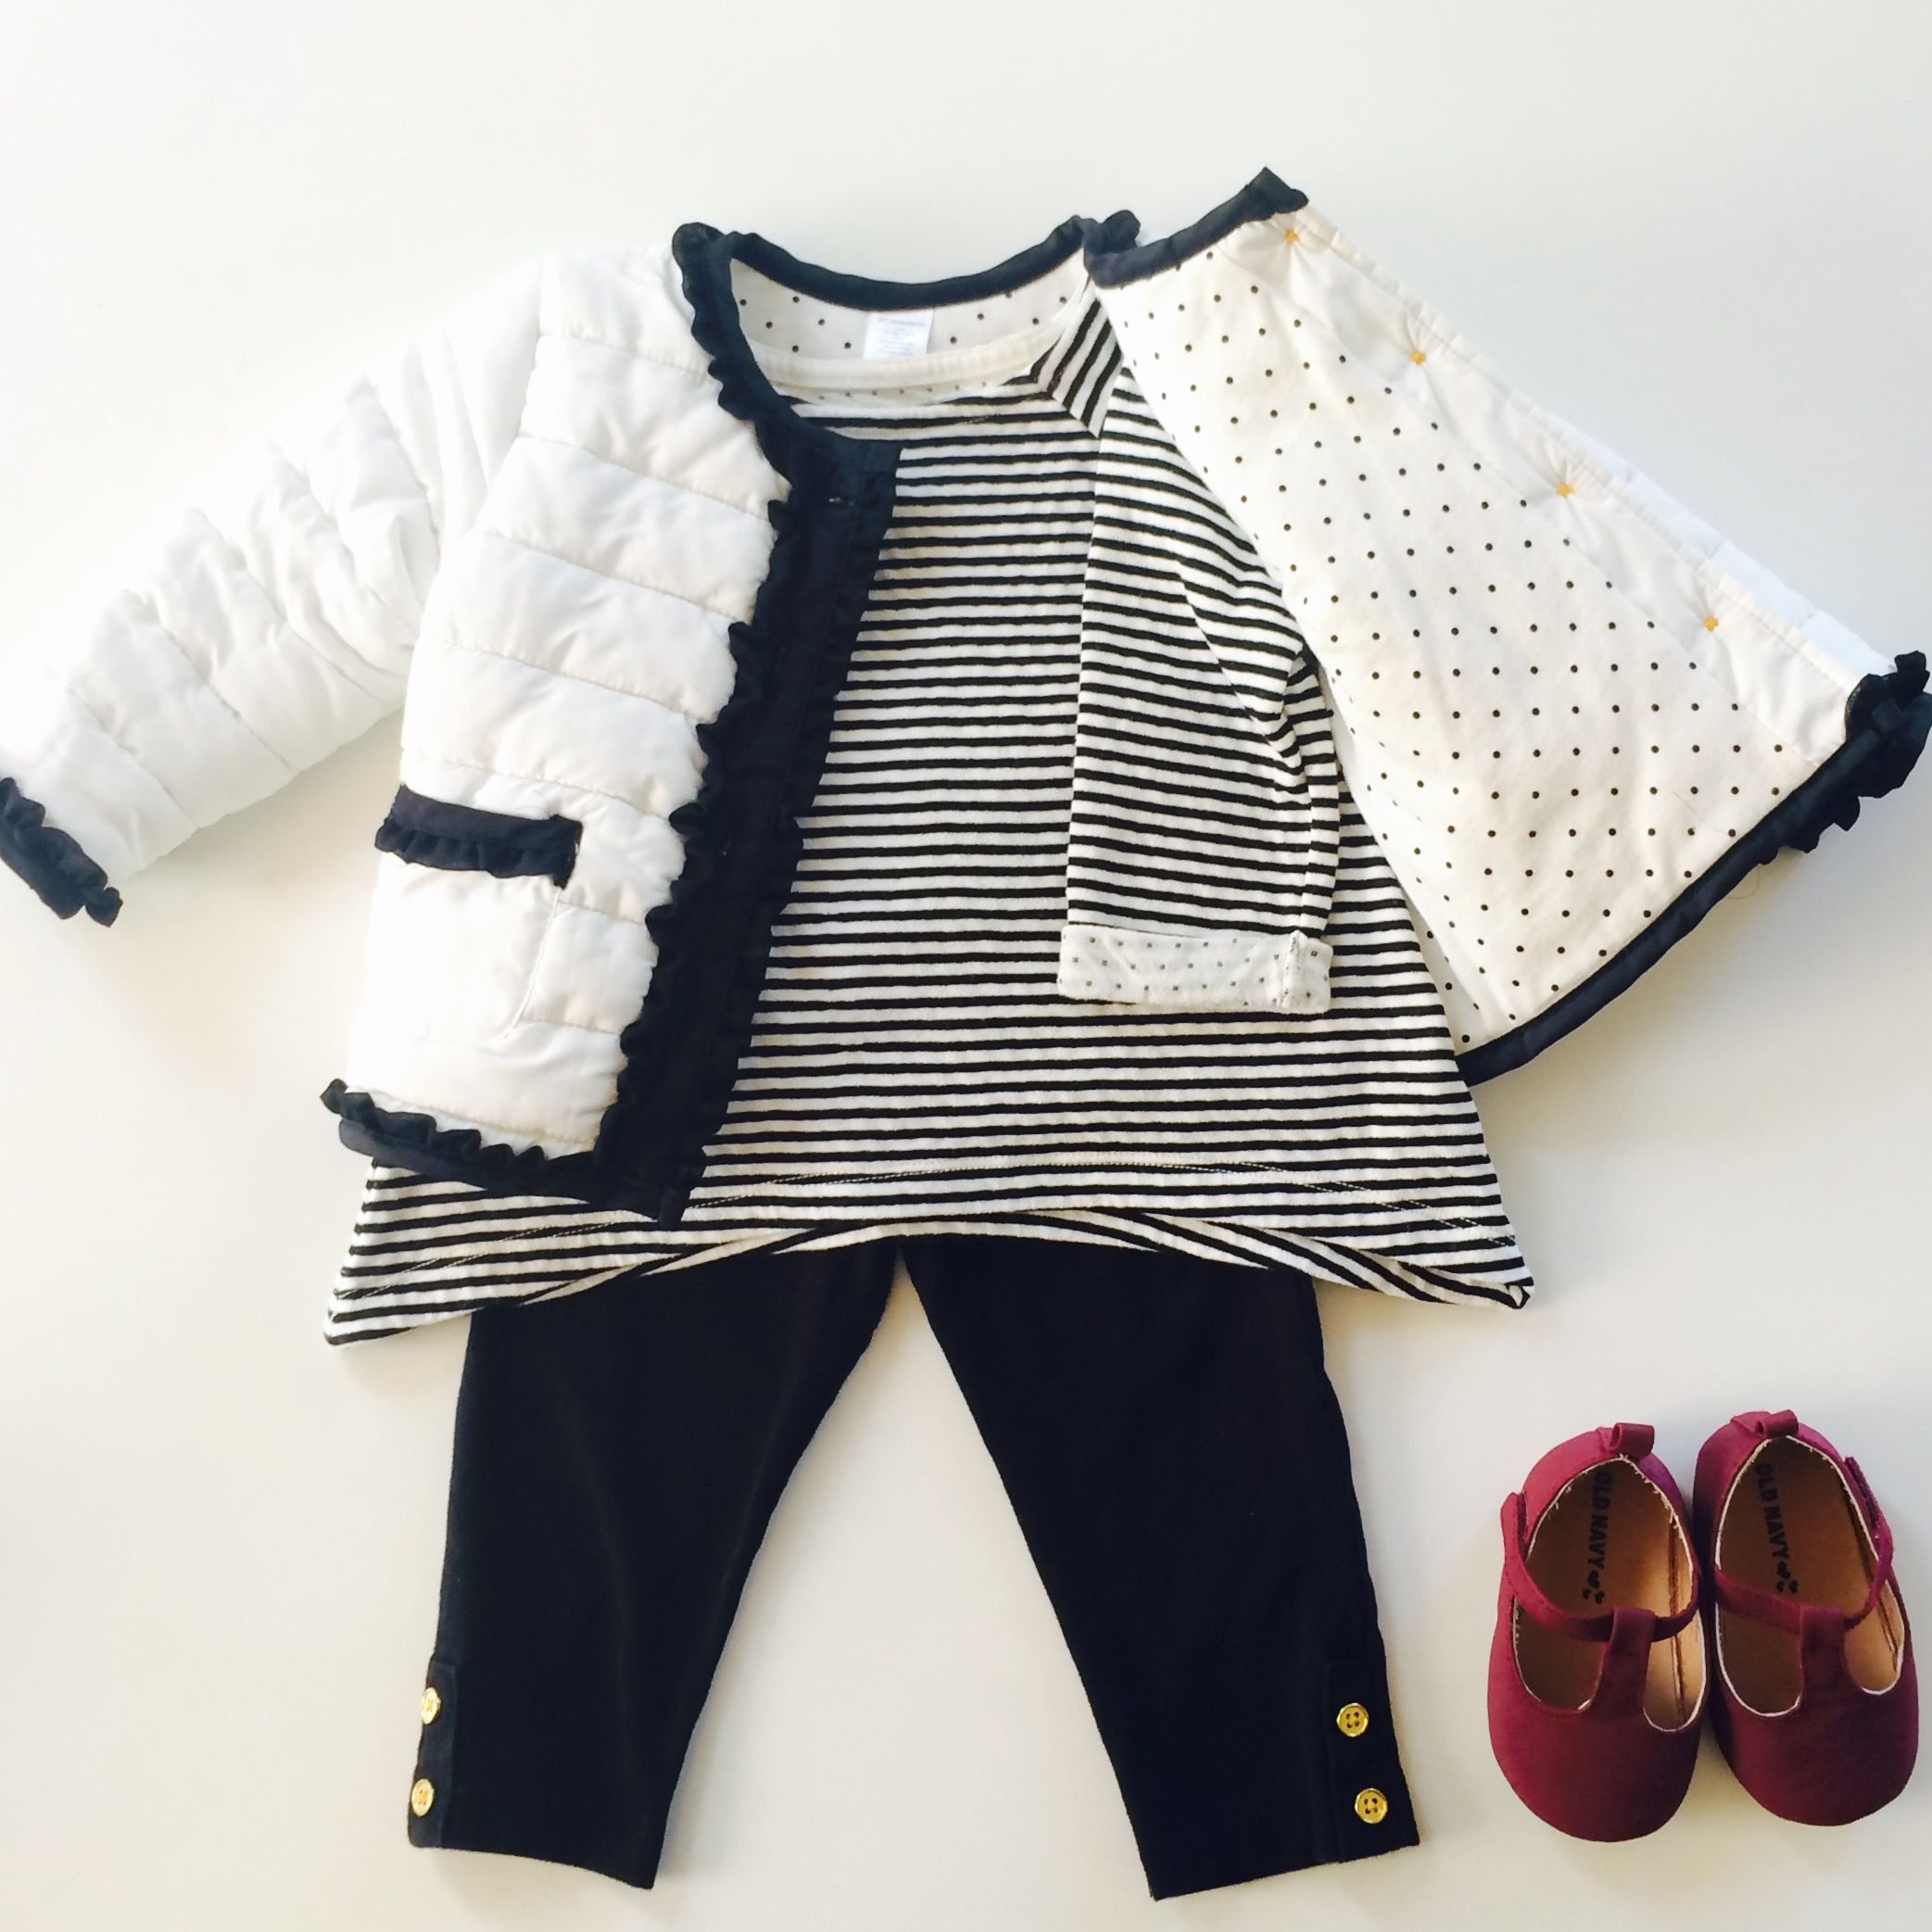 Coco Baby Chanel esce Jacket to give your baby girl a chic